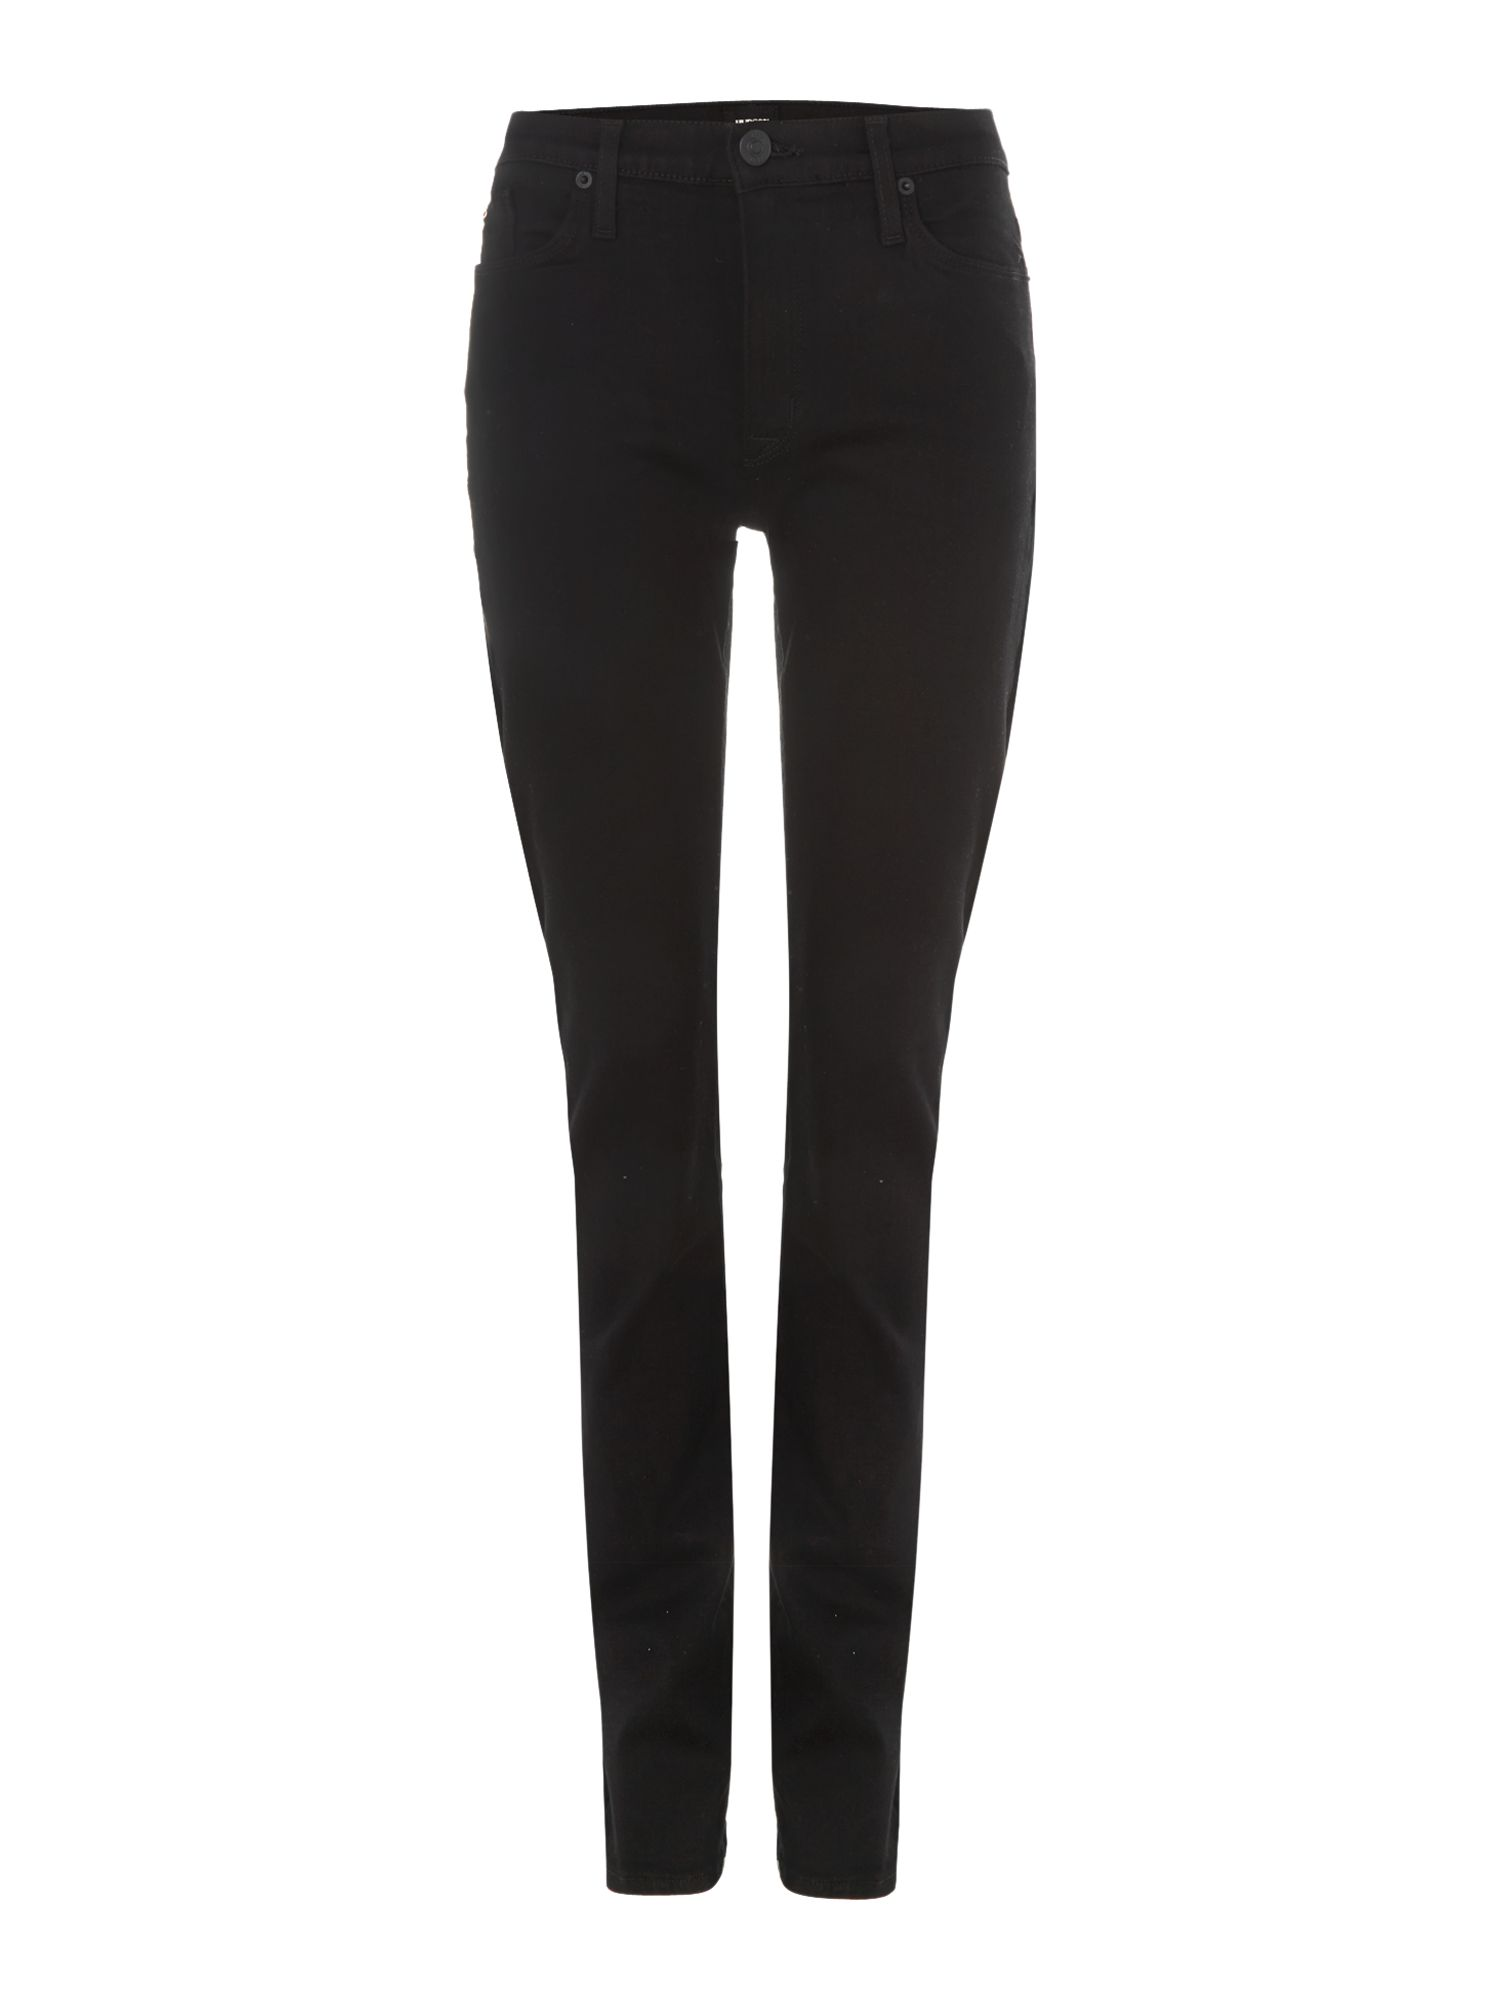 Tilda cigarette straight jeans in Black